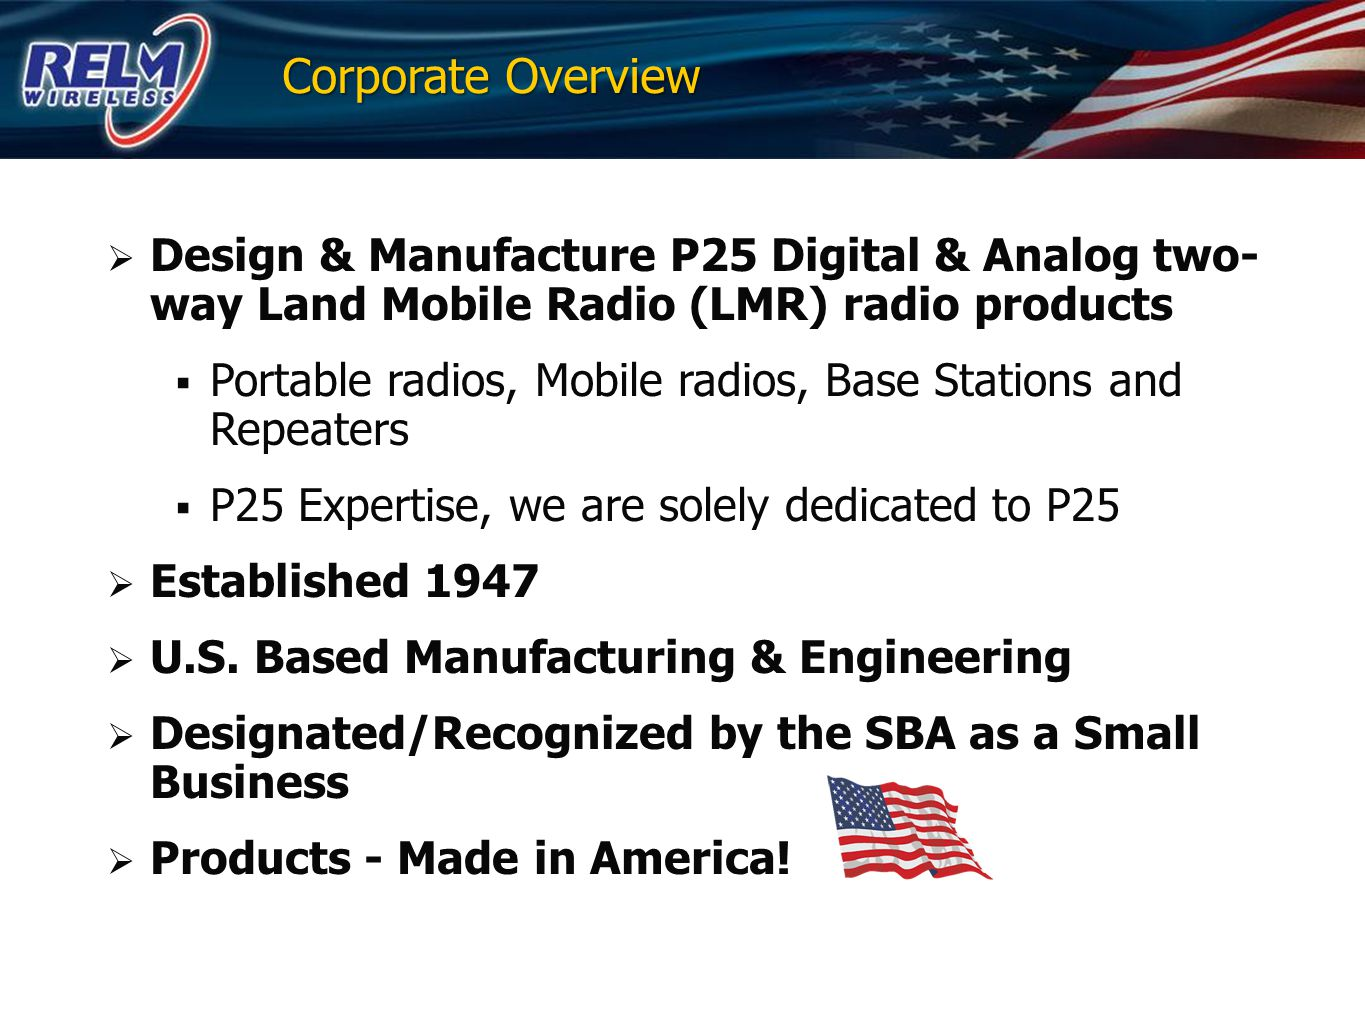 Corporate Overview Design & Manufacture P25 Digital & Analog two-way Land Mobile Radio (LMR) radio products.